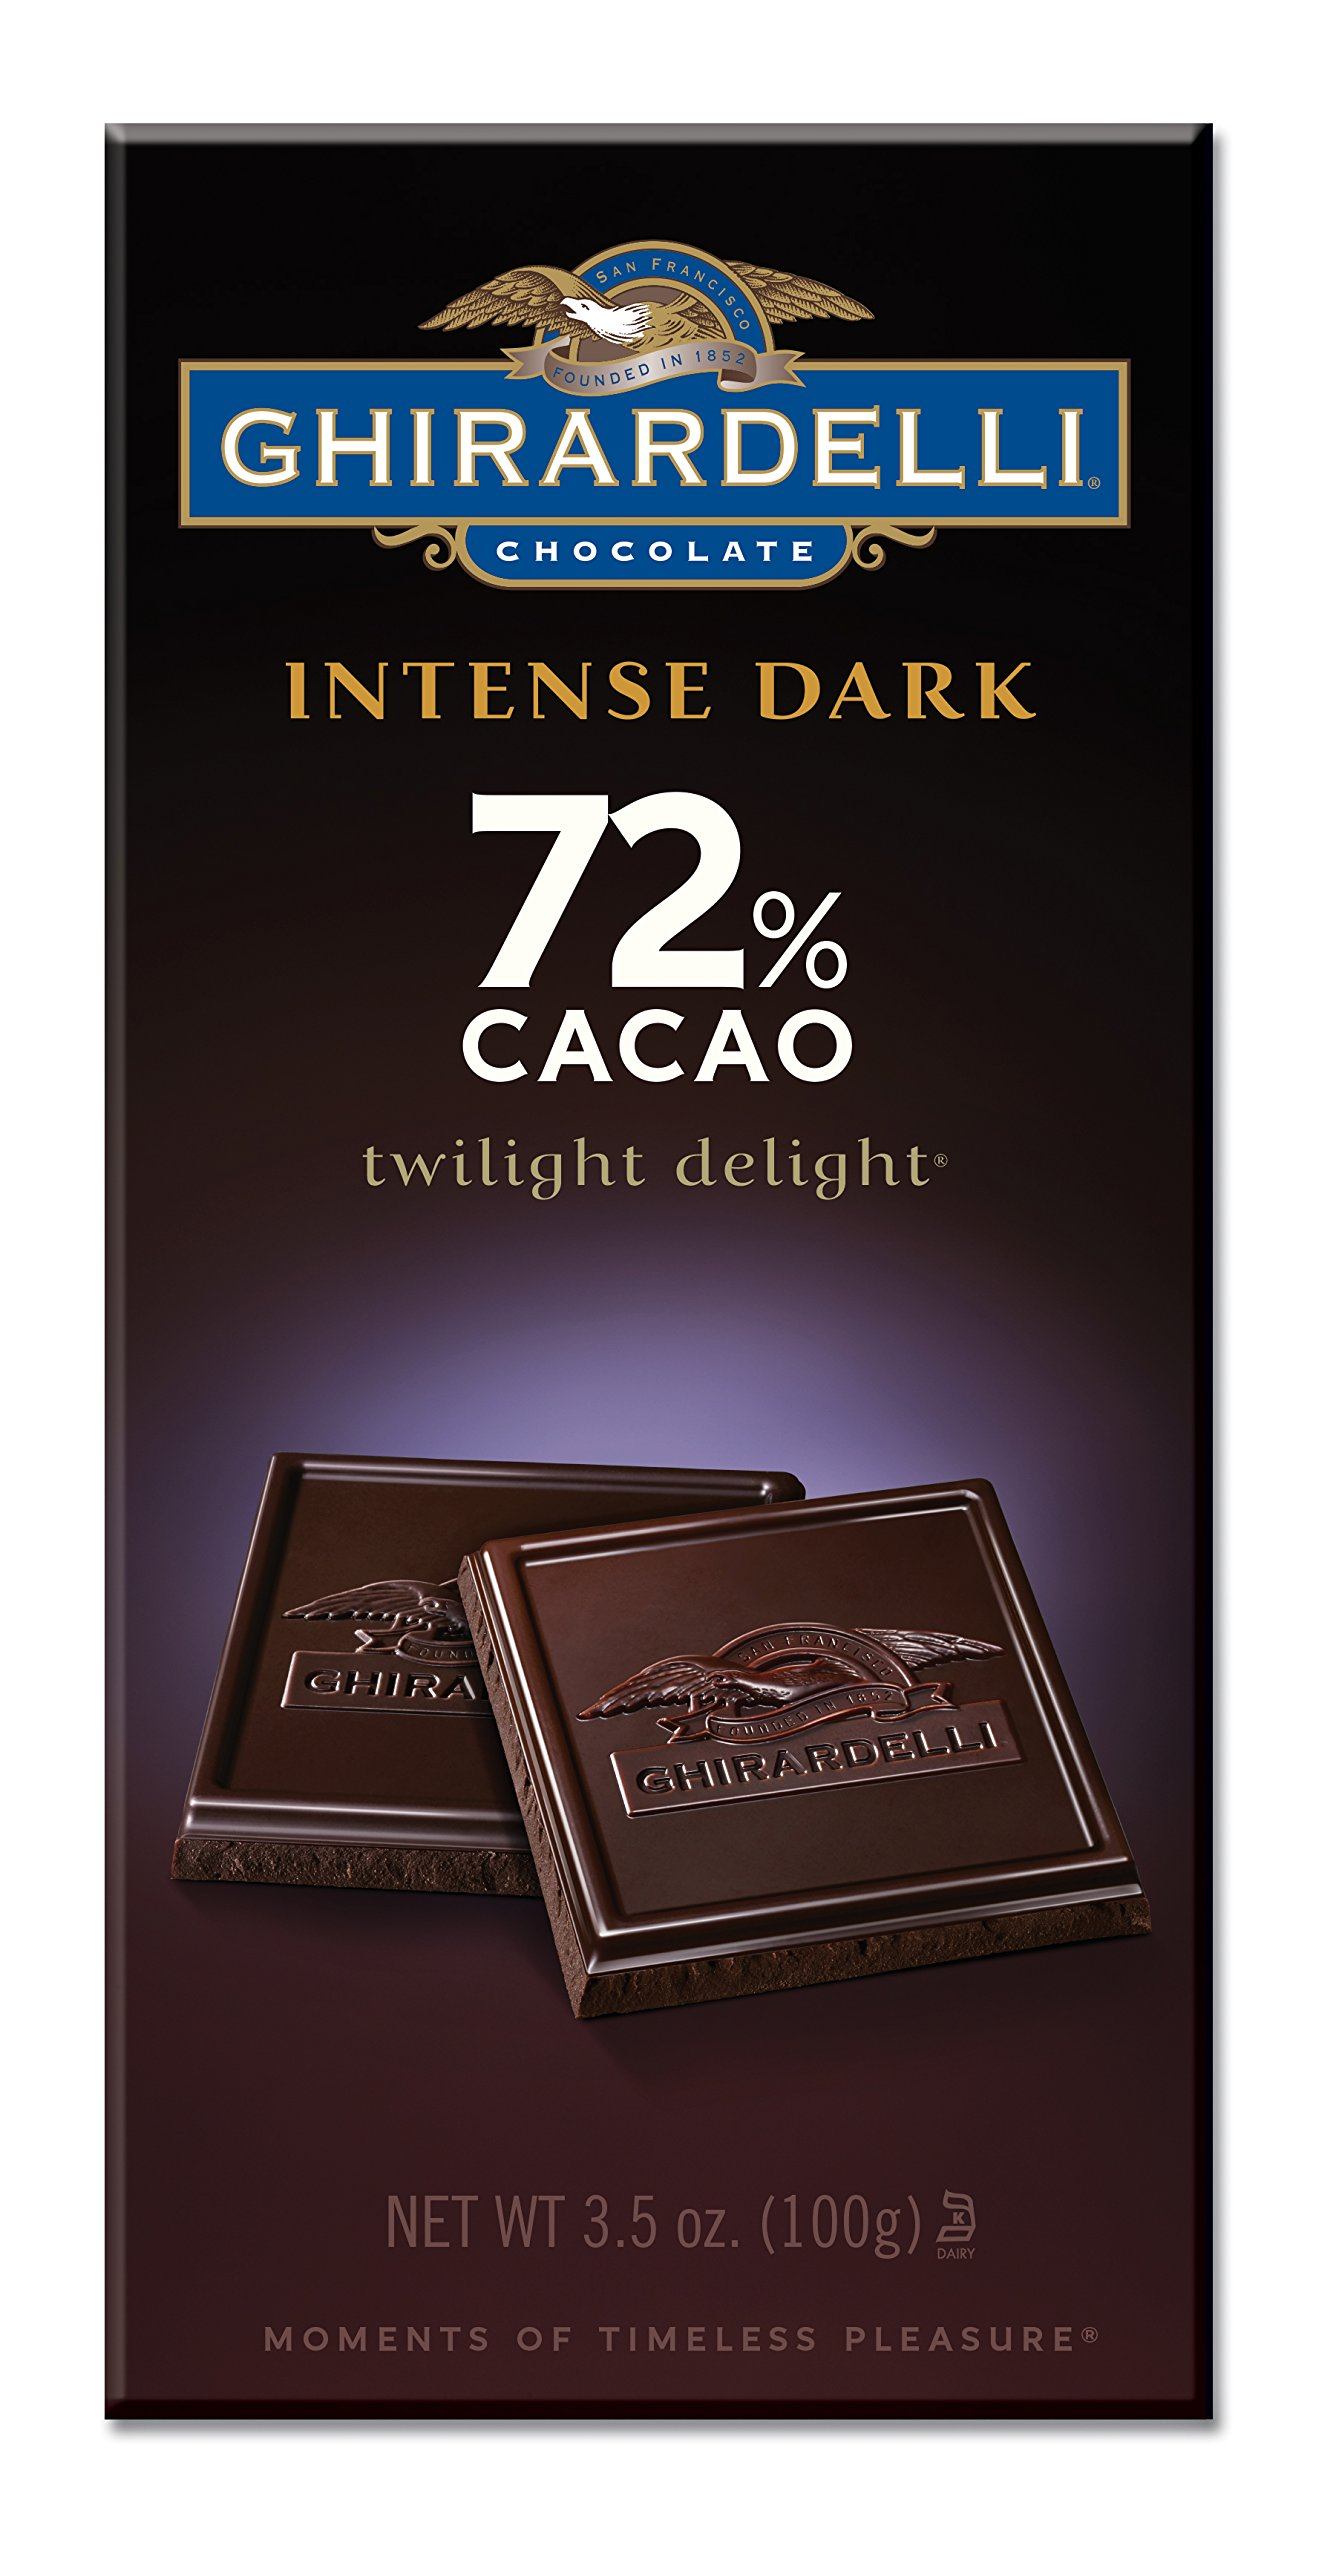 Ghirardelli Chocolate Intense Dark Bar, Twilight Delight 72% Cacao, 3.5-Ounce Bars (Pack of 6)